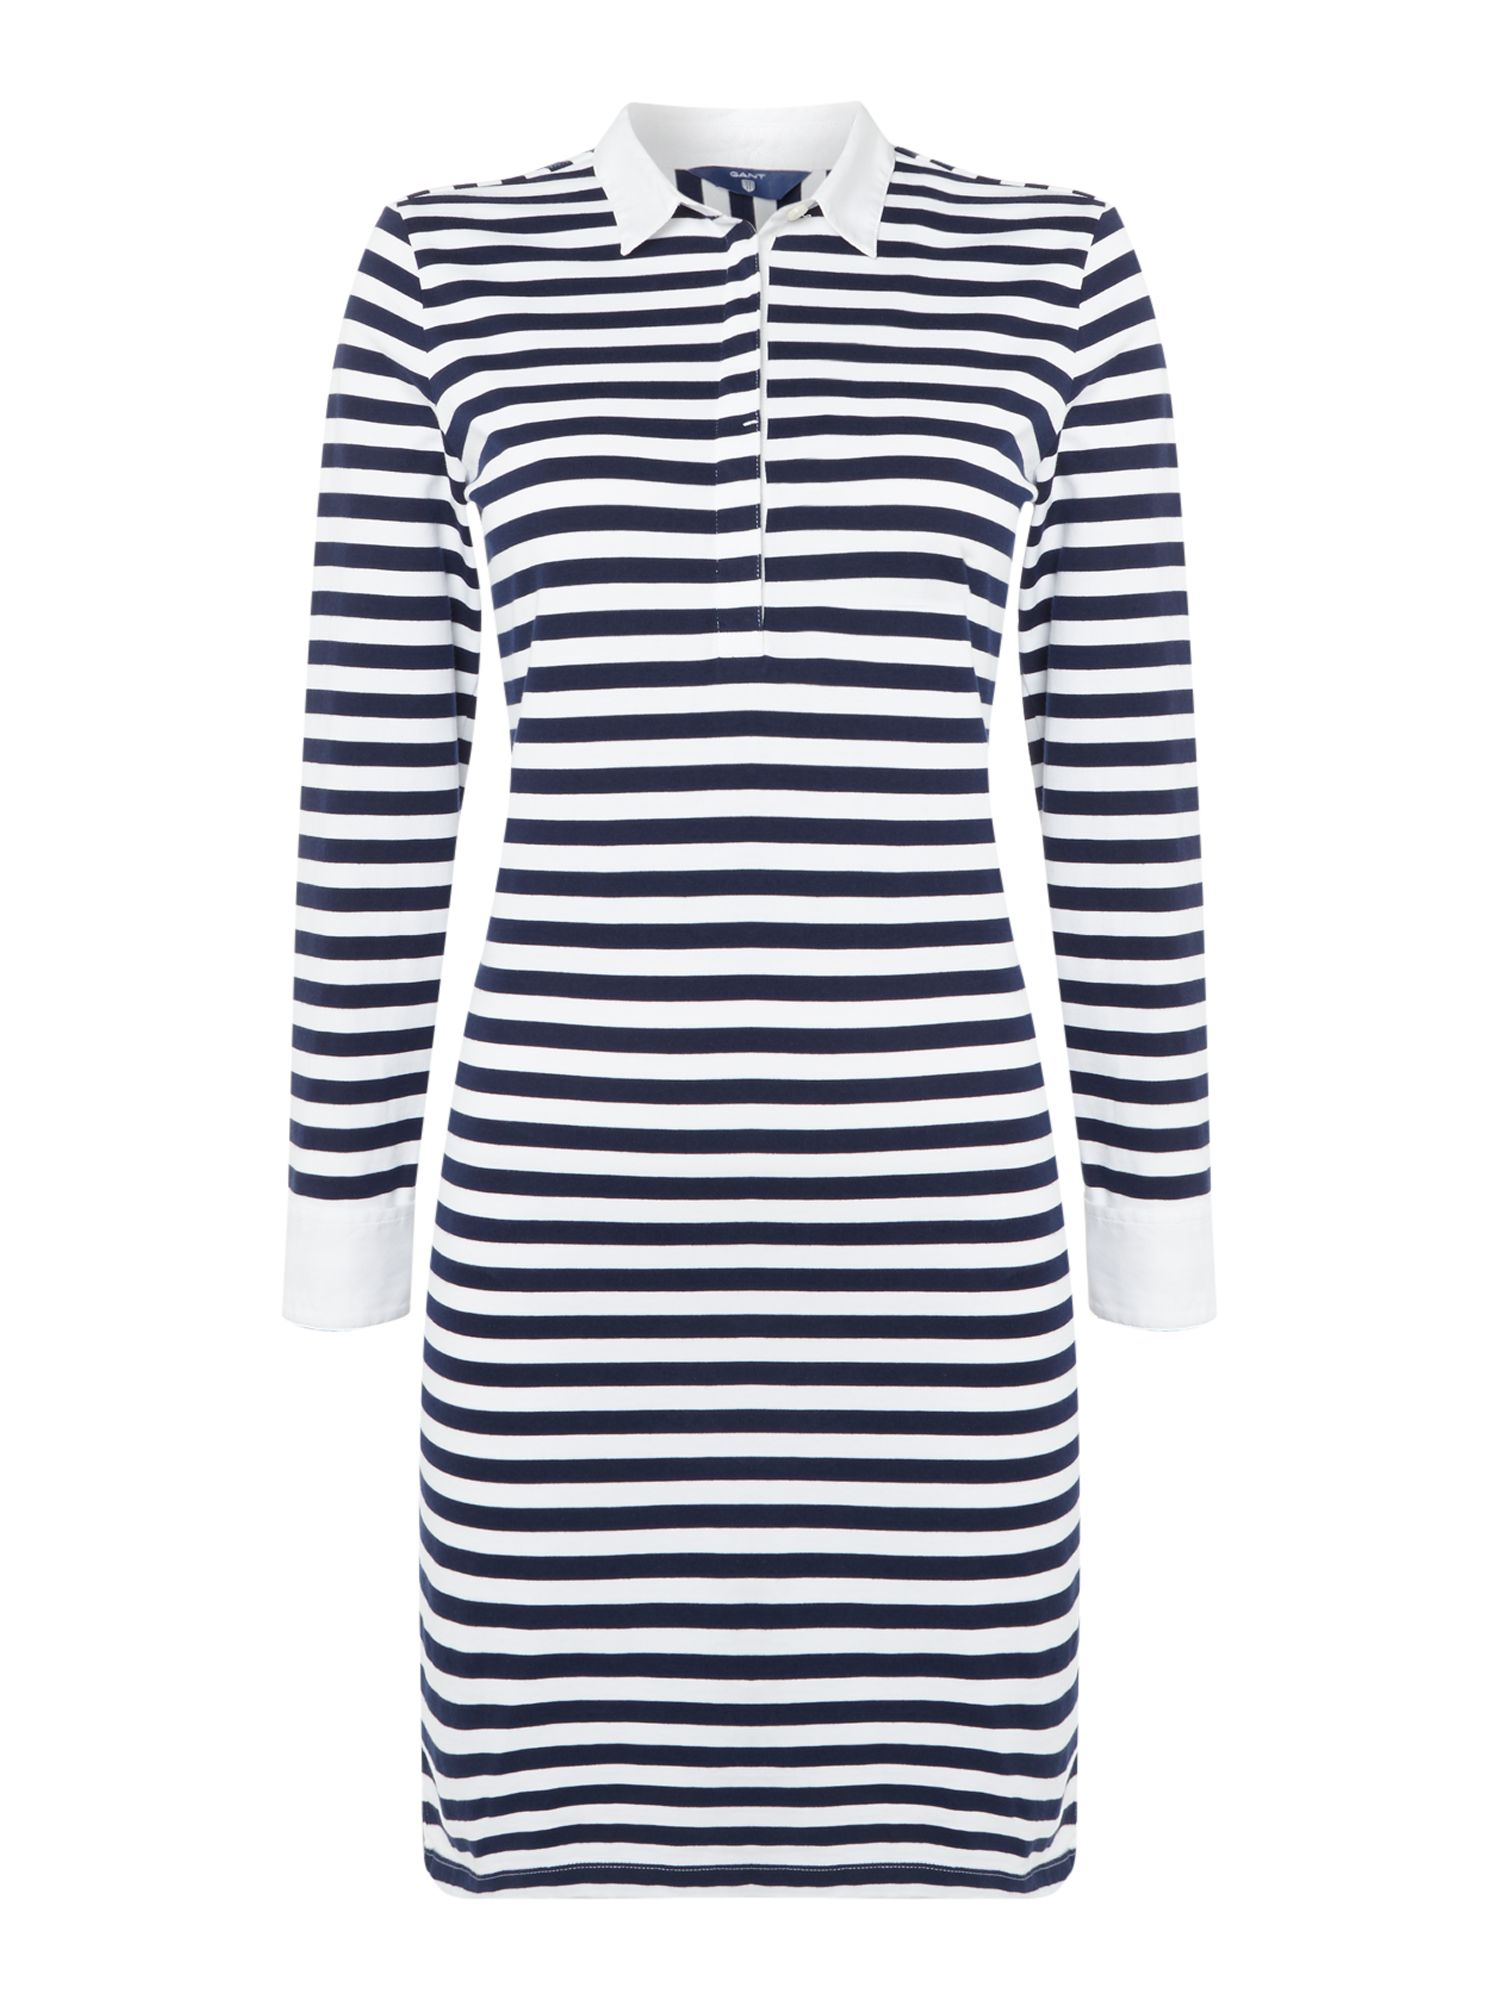 GANT Long Sleeve Striped Dress With Collar, White